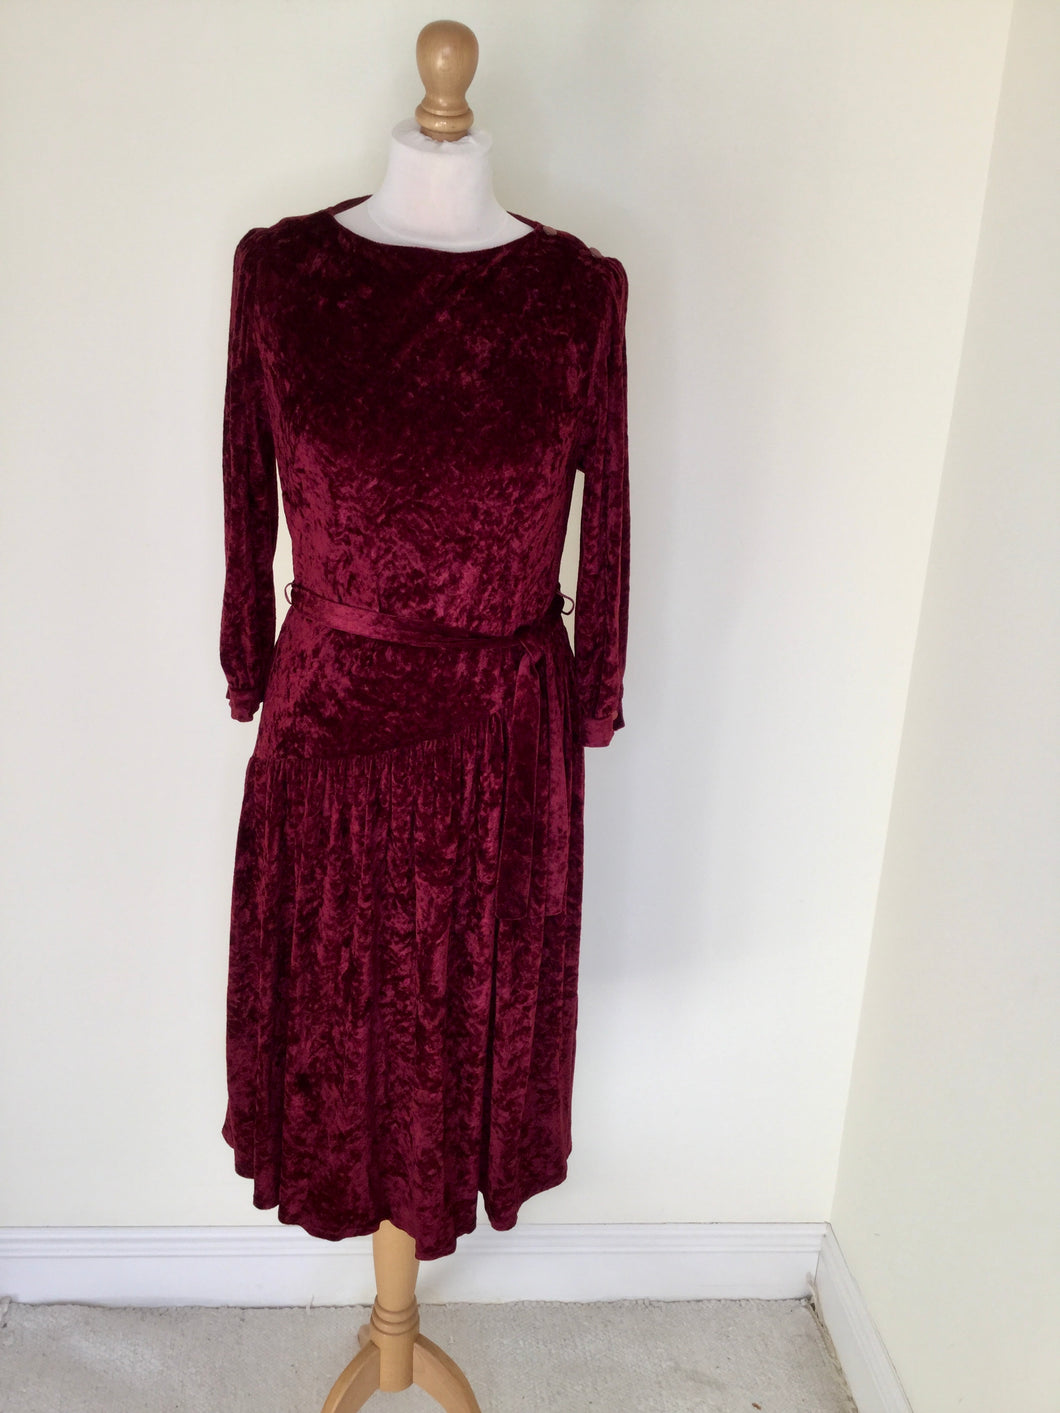 Vintage crushed velvet dress in cranberry